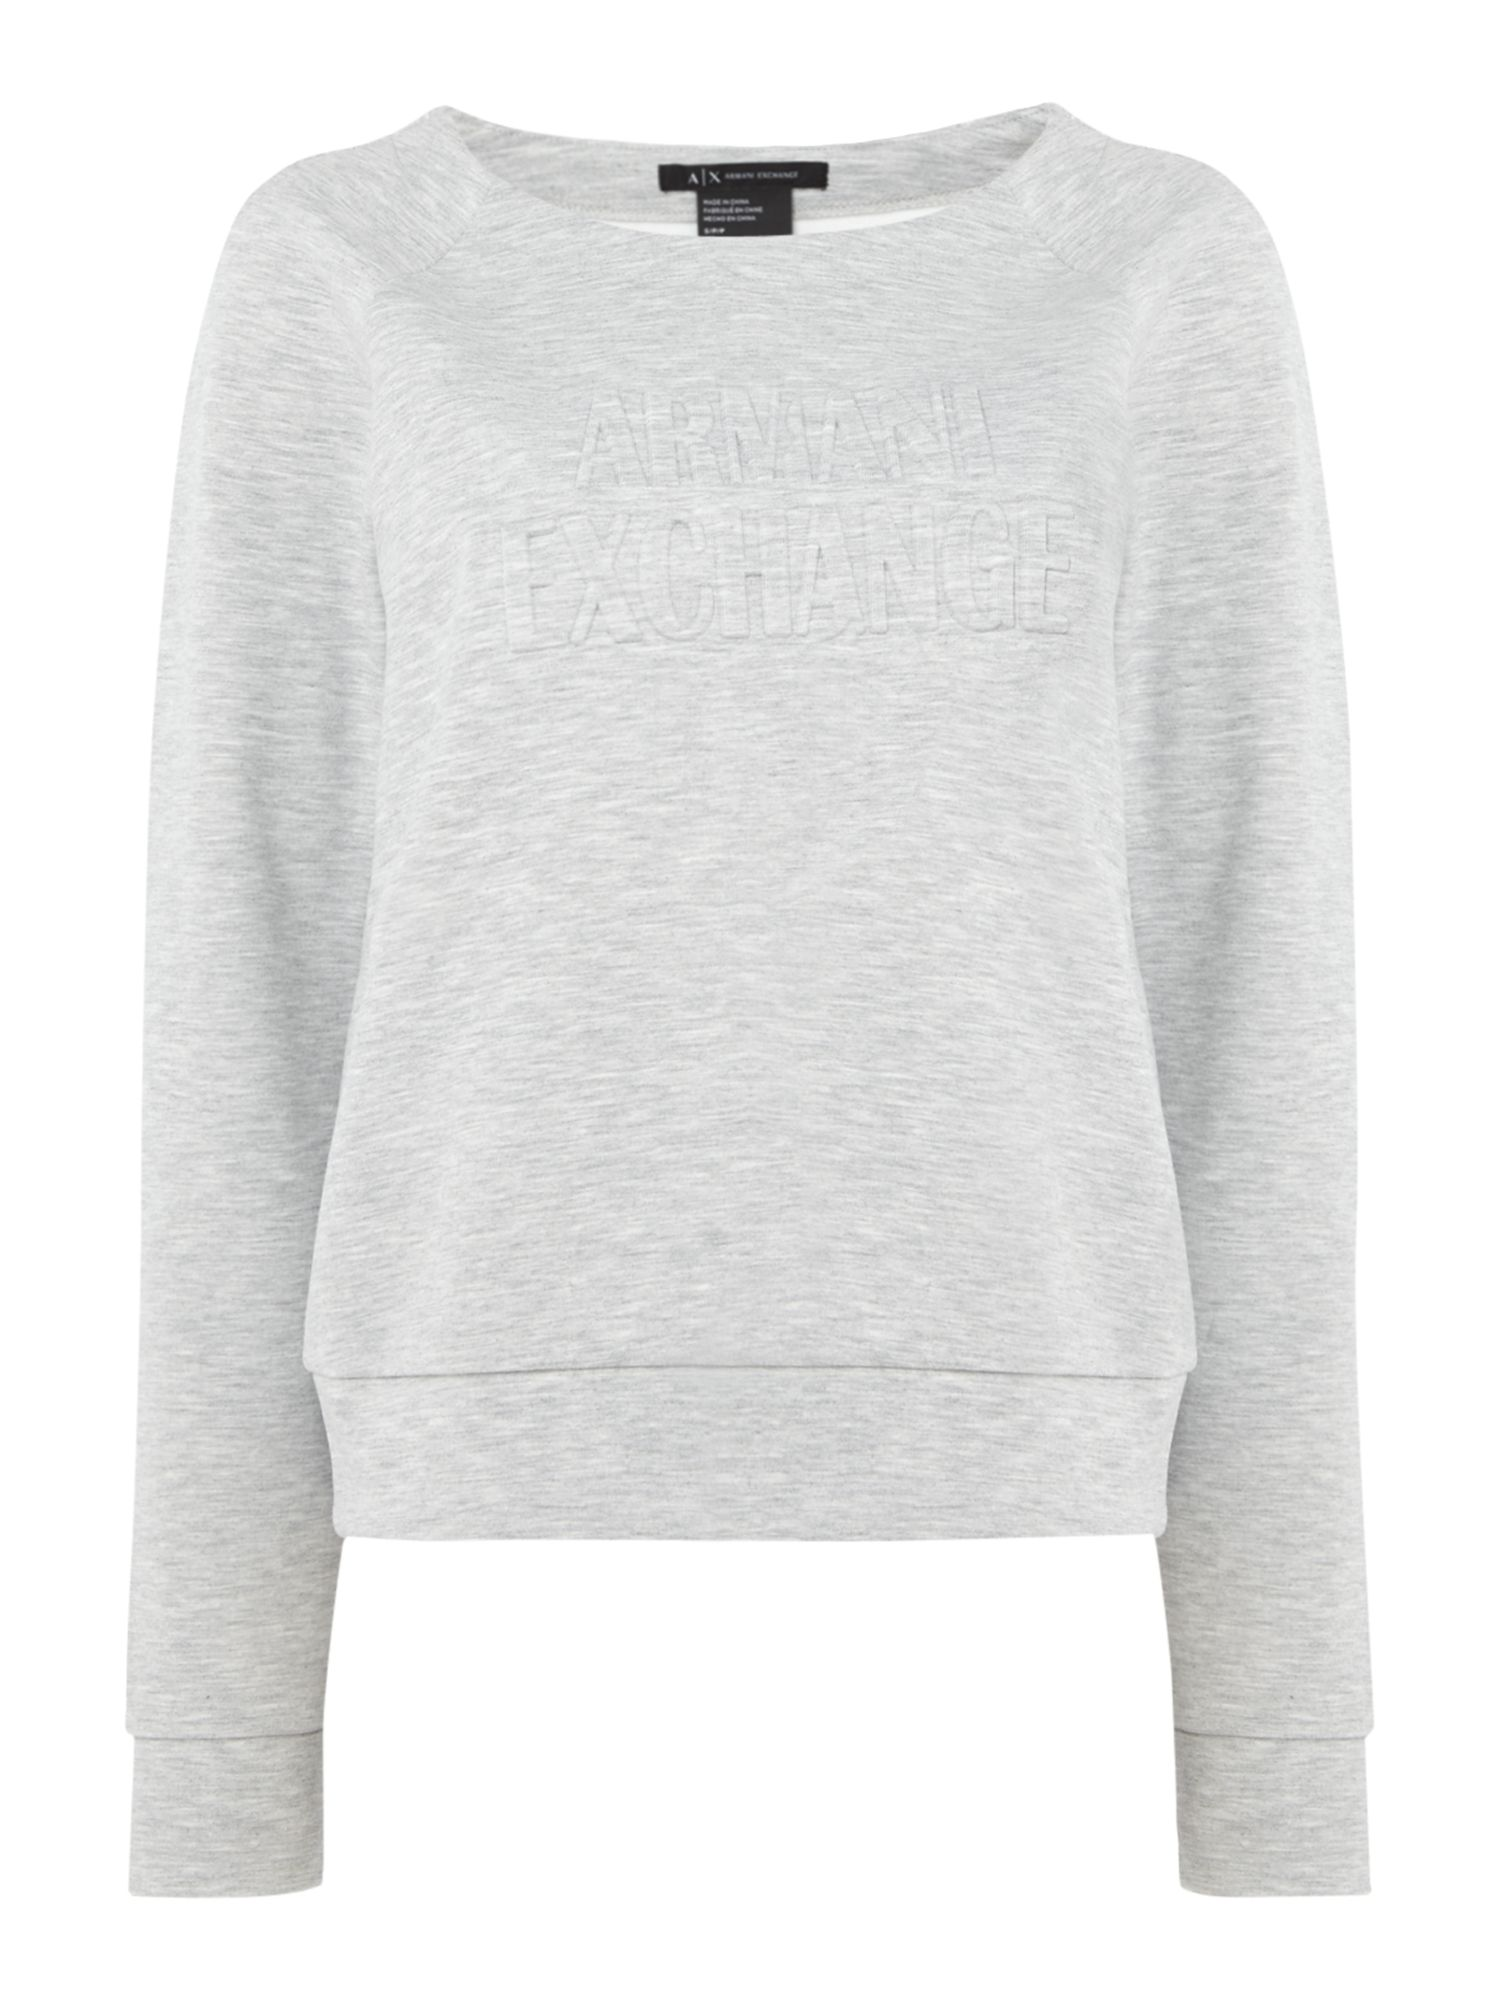 Armani Exchange Jersey Top in Heather Grey, Grey